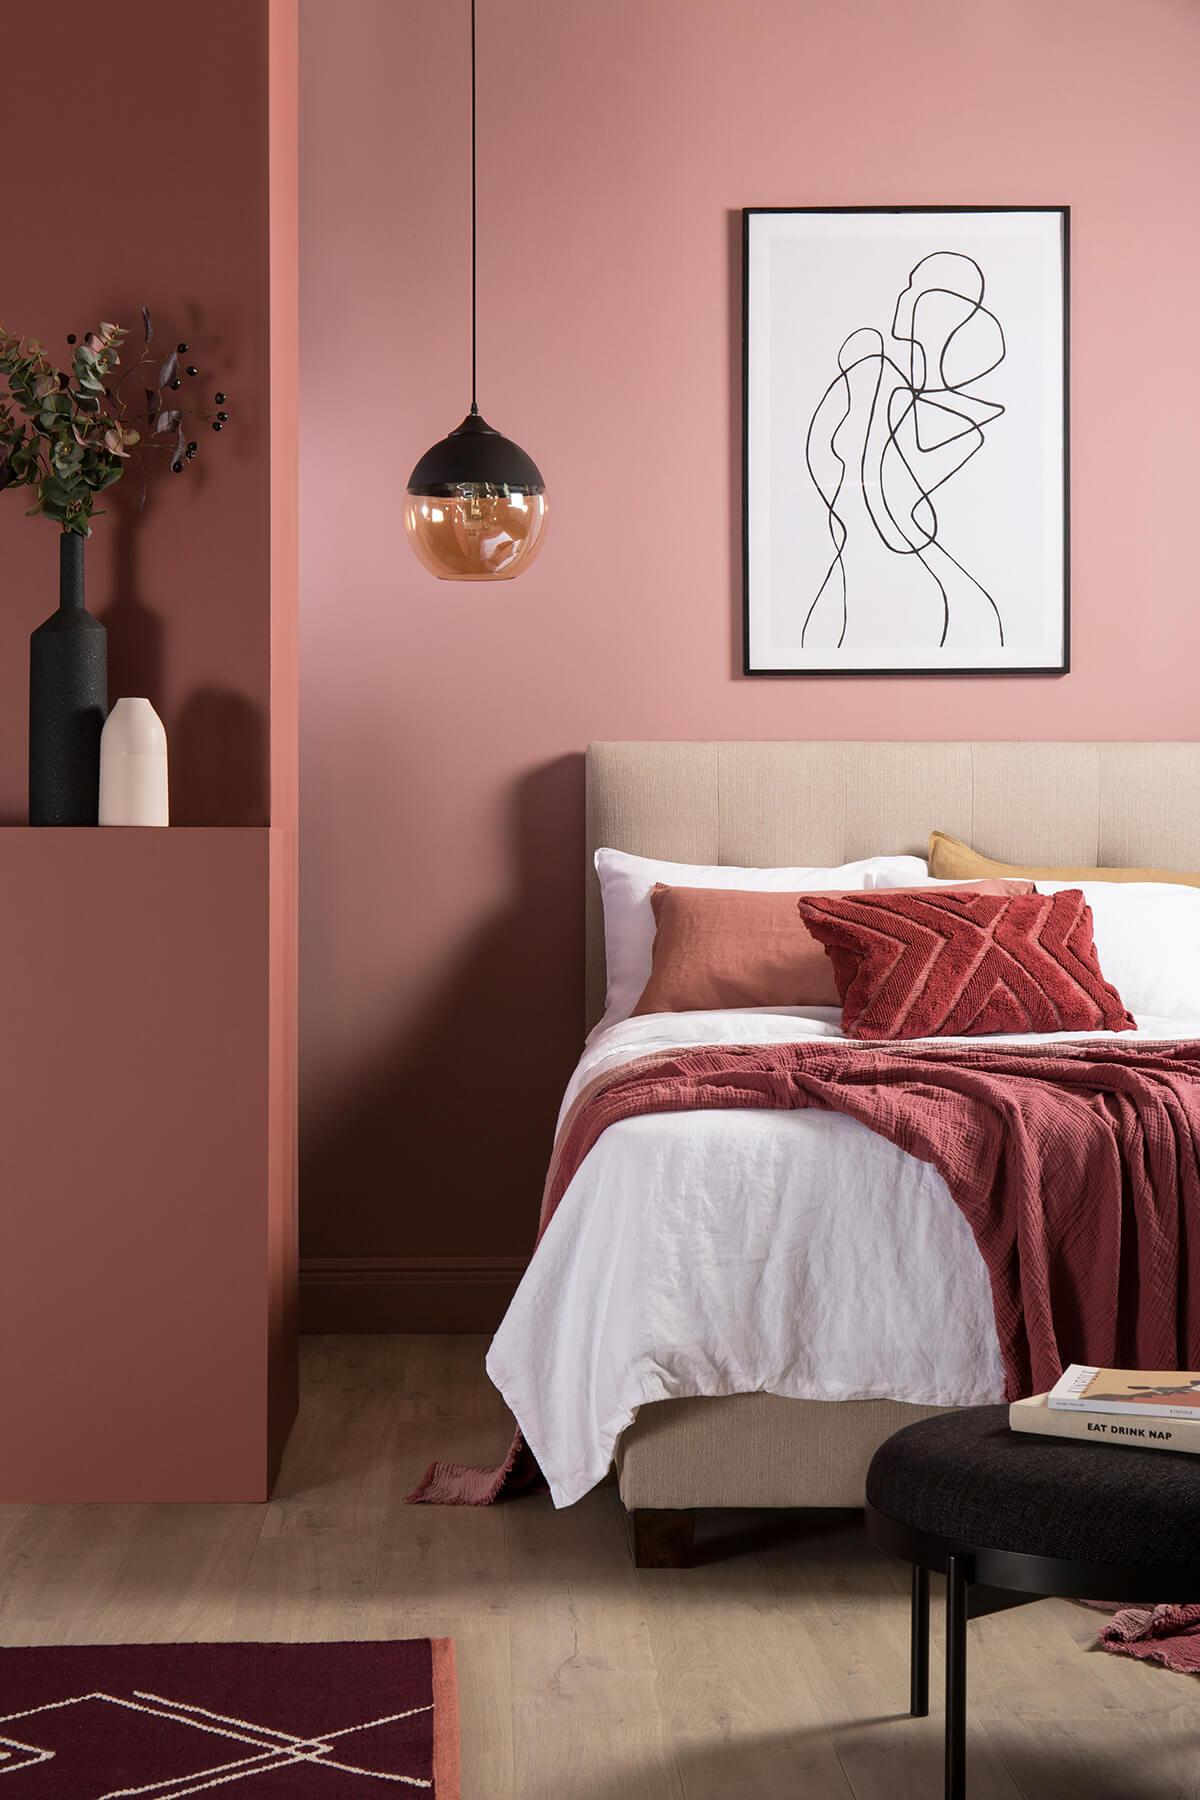 A cosy Scandi design style bedroom with a blush tone backdrop and neutral quilted bed